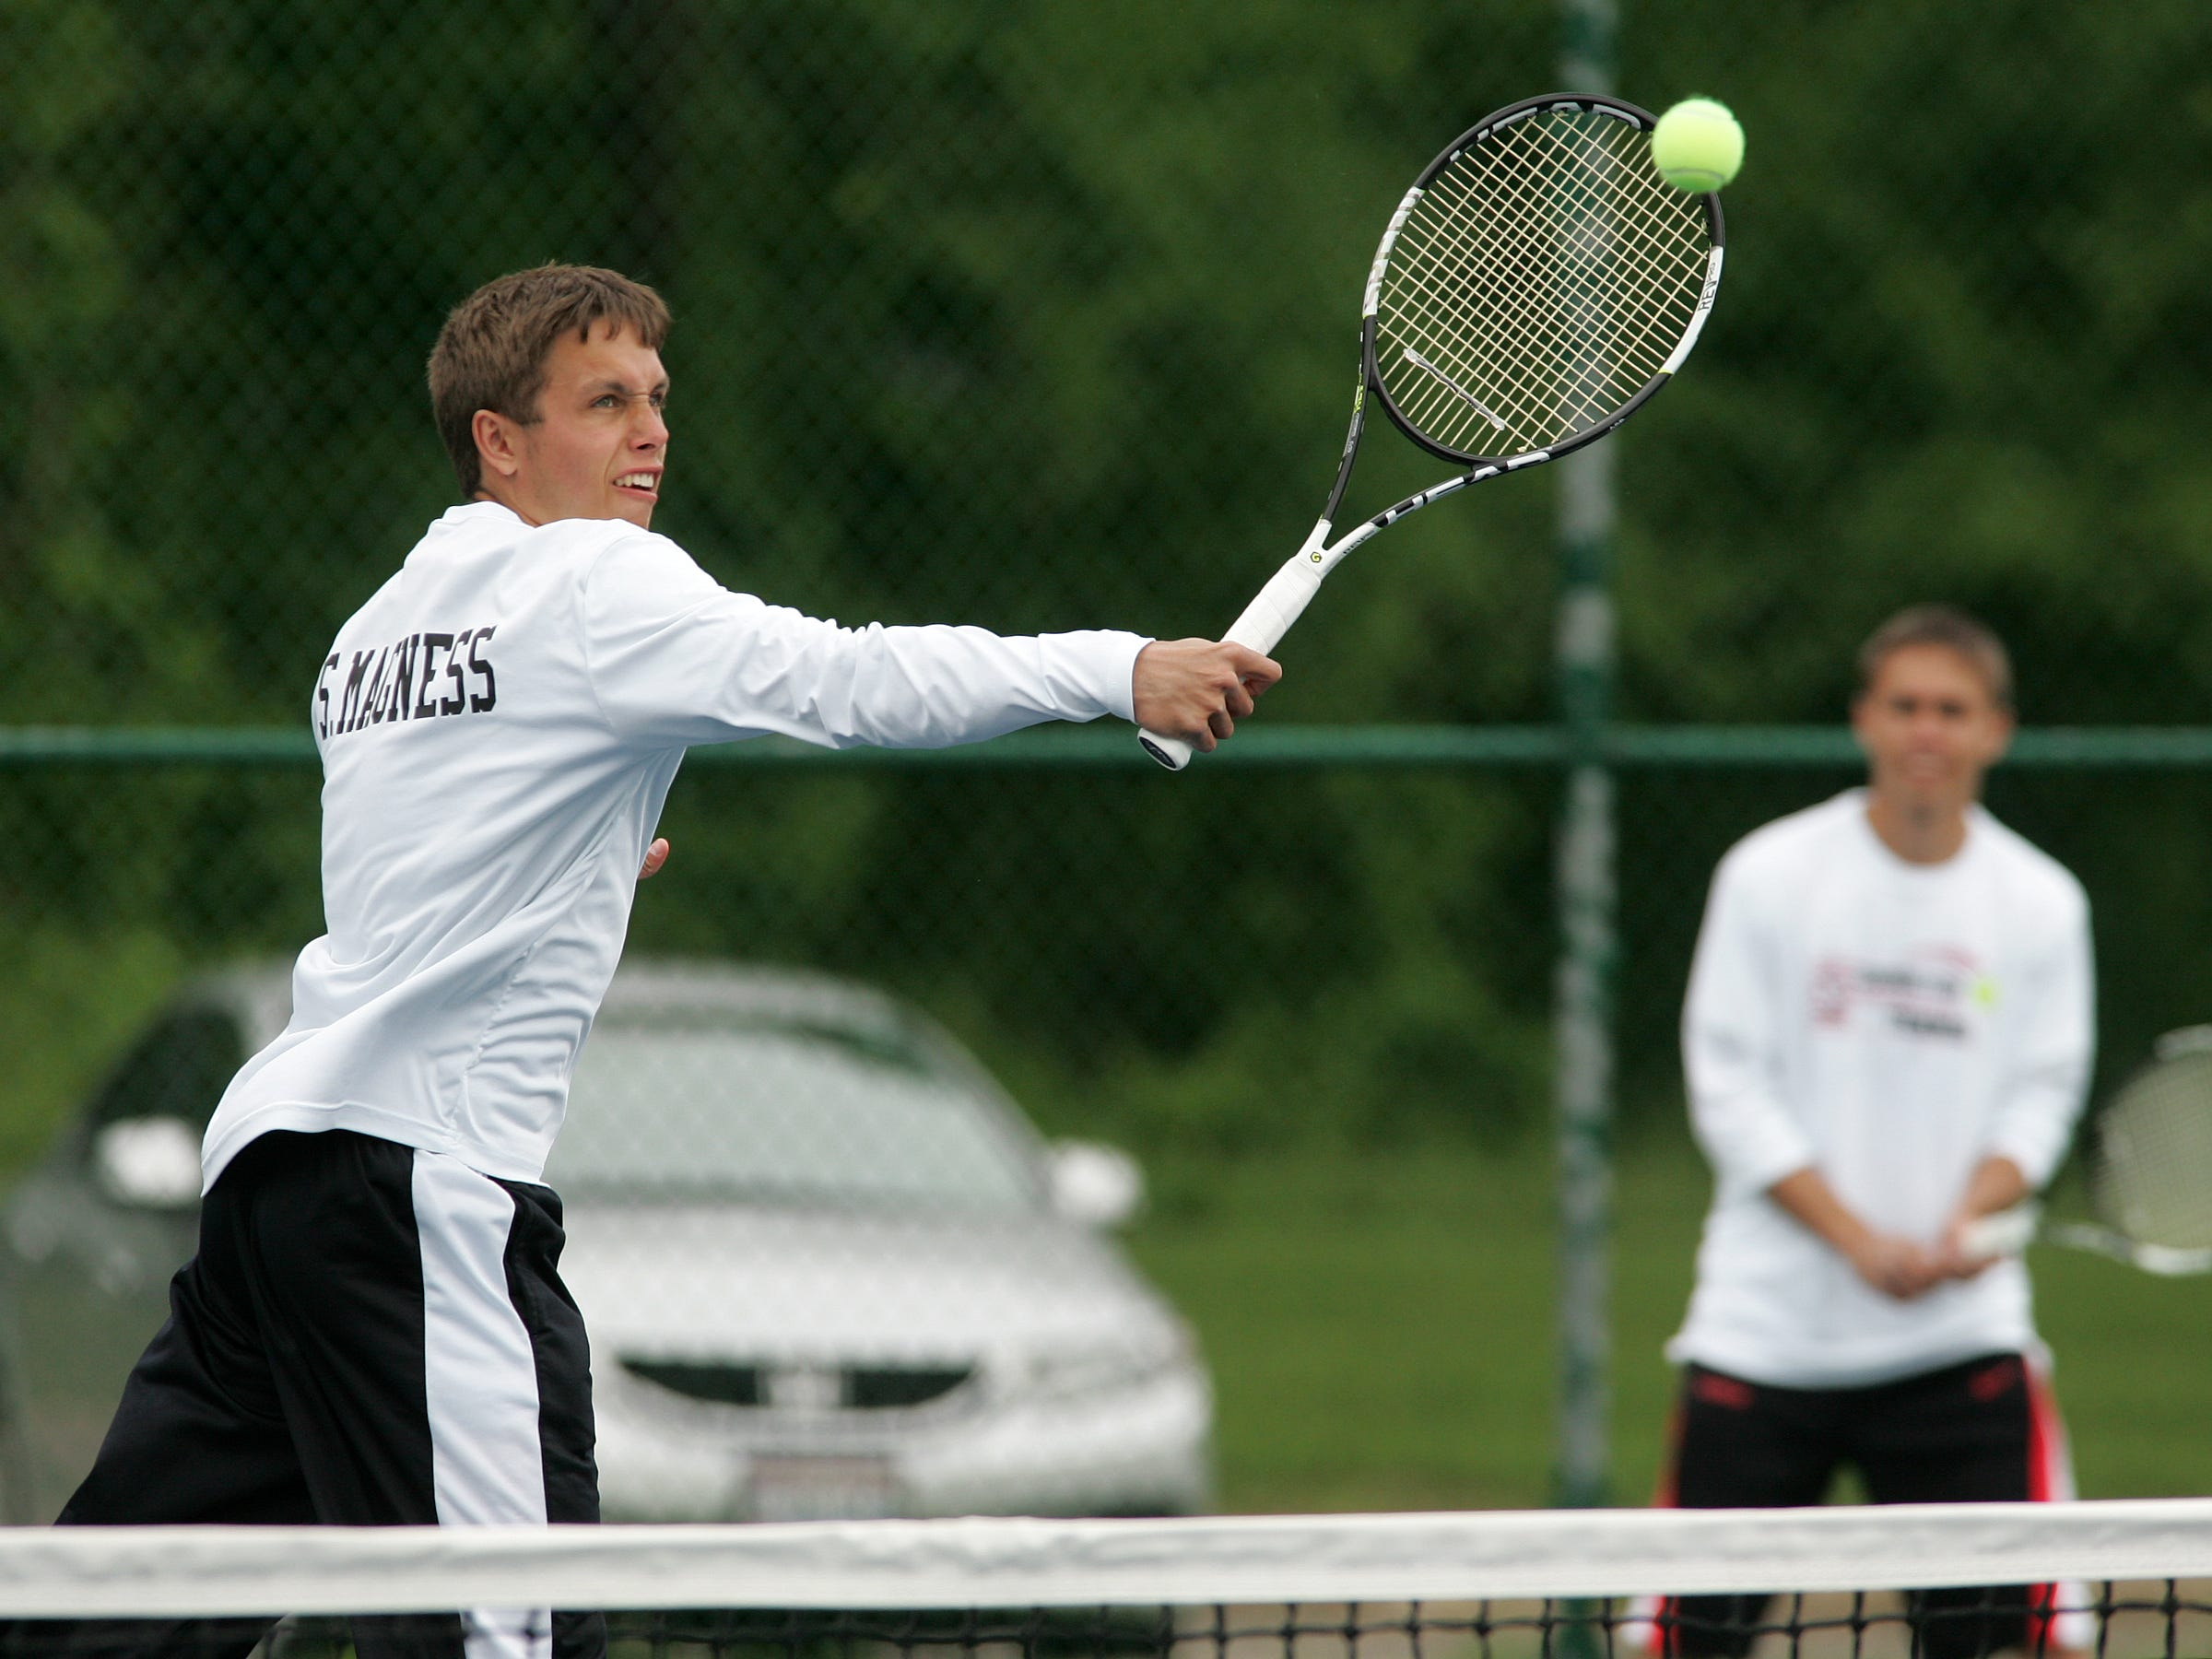 Sam Magness, left, and Jim Magness practice together as a doubles team Thursday at Coshocton High School. The brothers will be defending their district title at Ohio University.